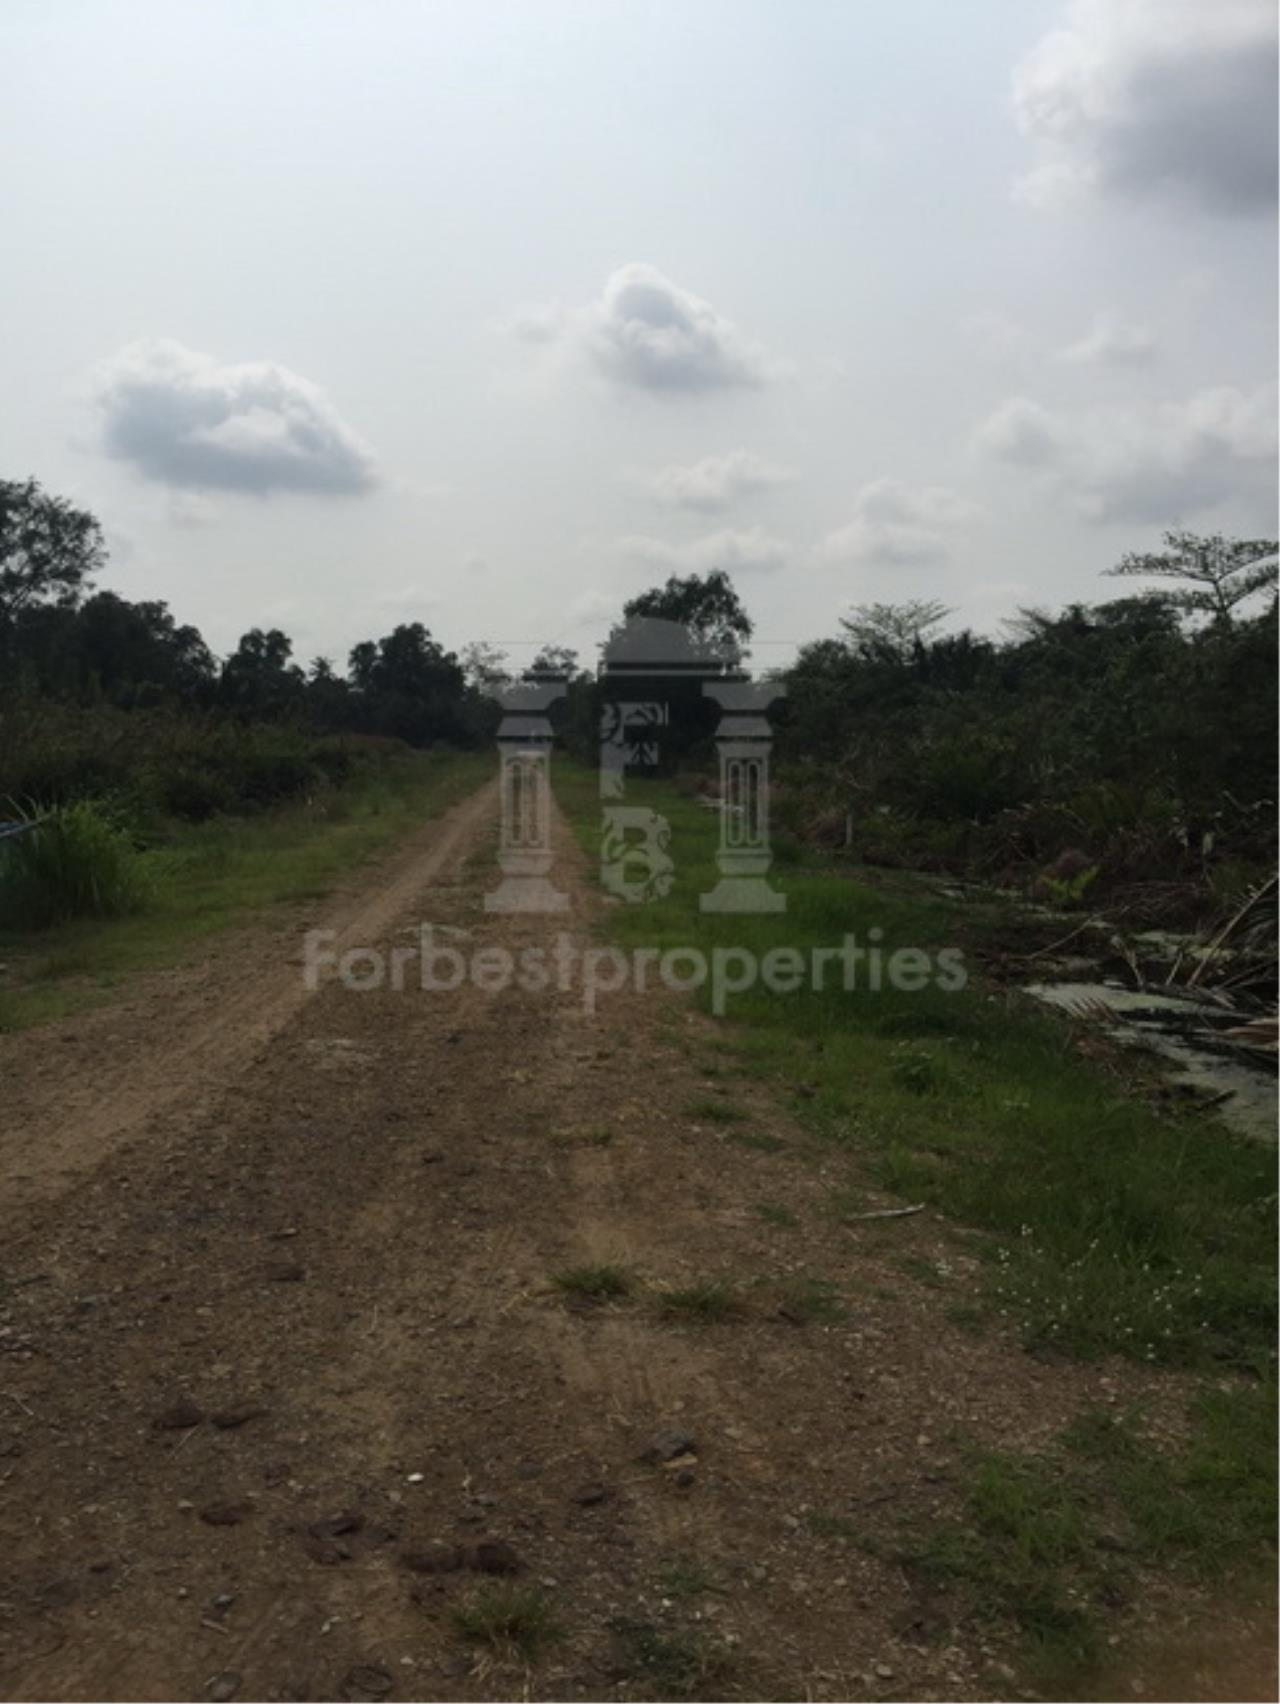 Forbest Properties Agency's 35941-Land For Sale, on Phetchahung Rd., land size 43 rai 8